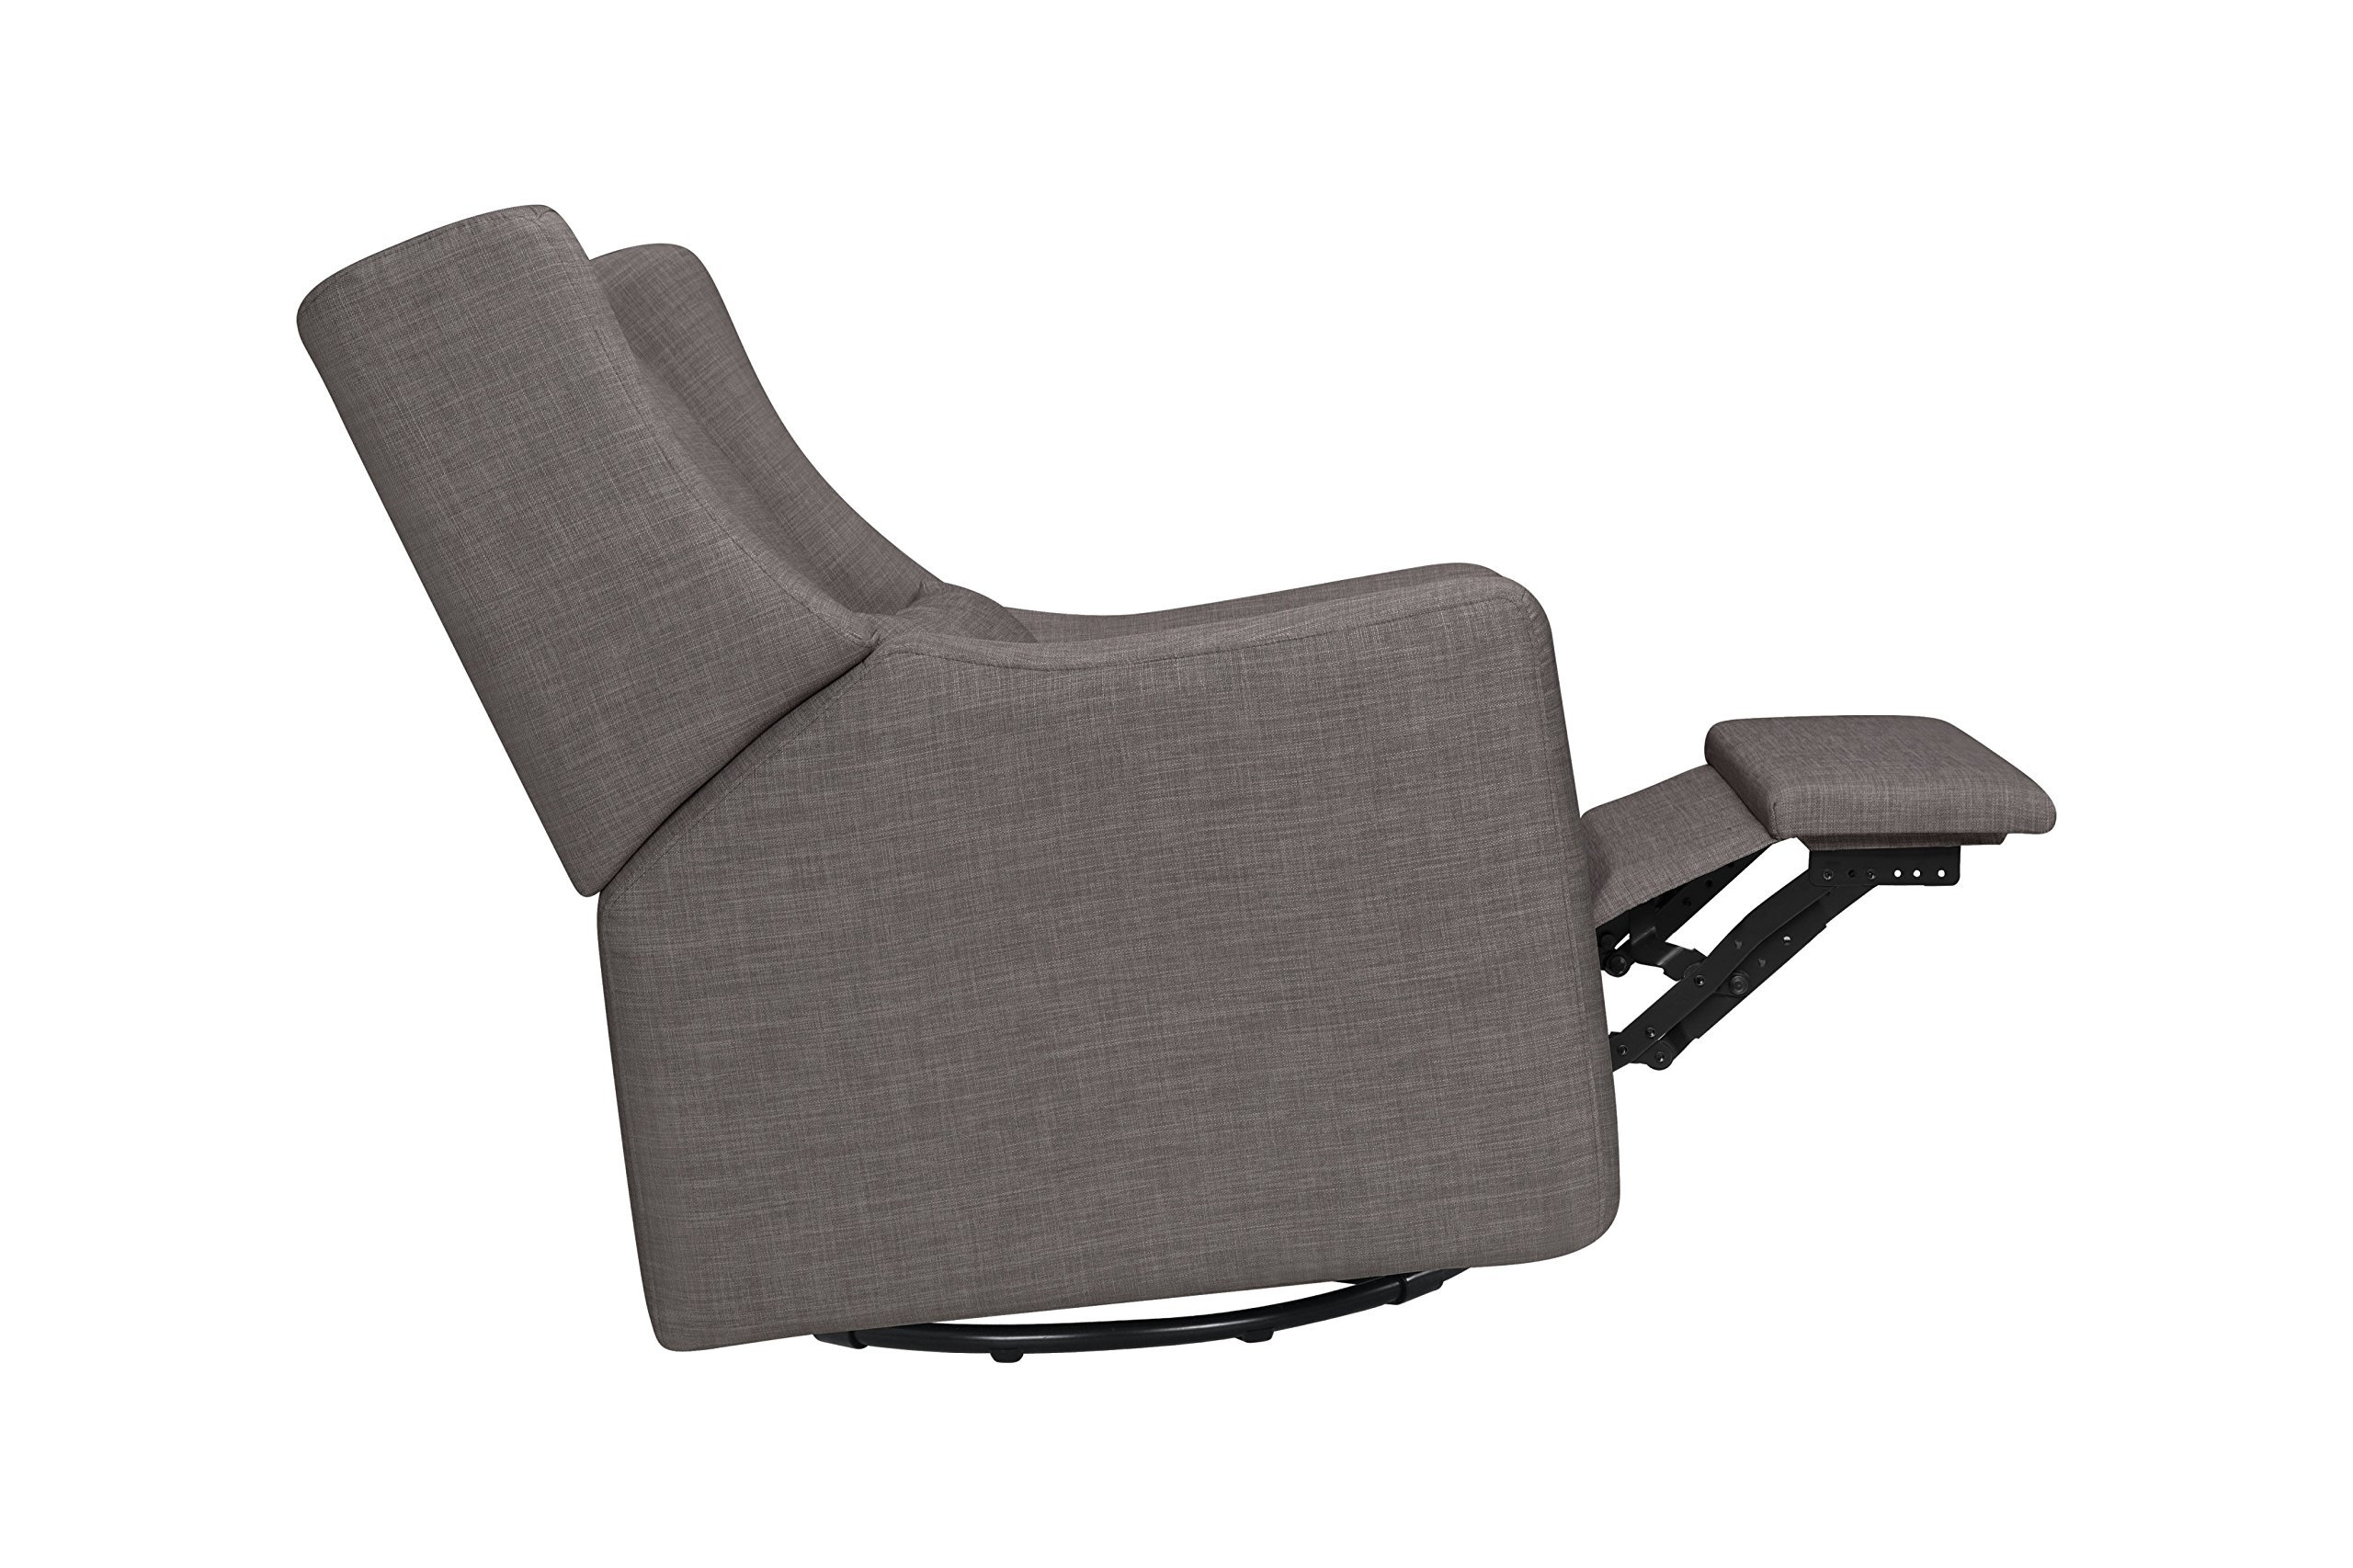 Babyletto Kiwi Electronic Recliner and Swivel Glider with USB Port, Grey Tweed by babyletto (Image #10)